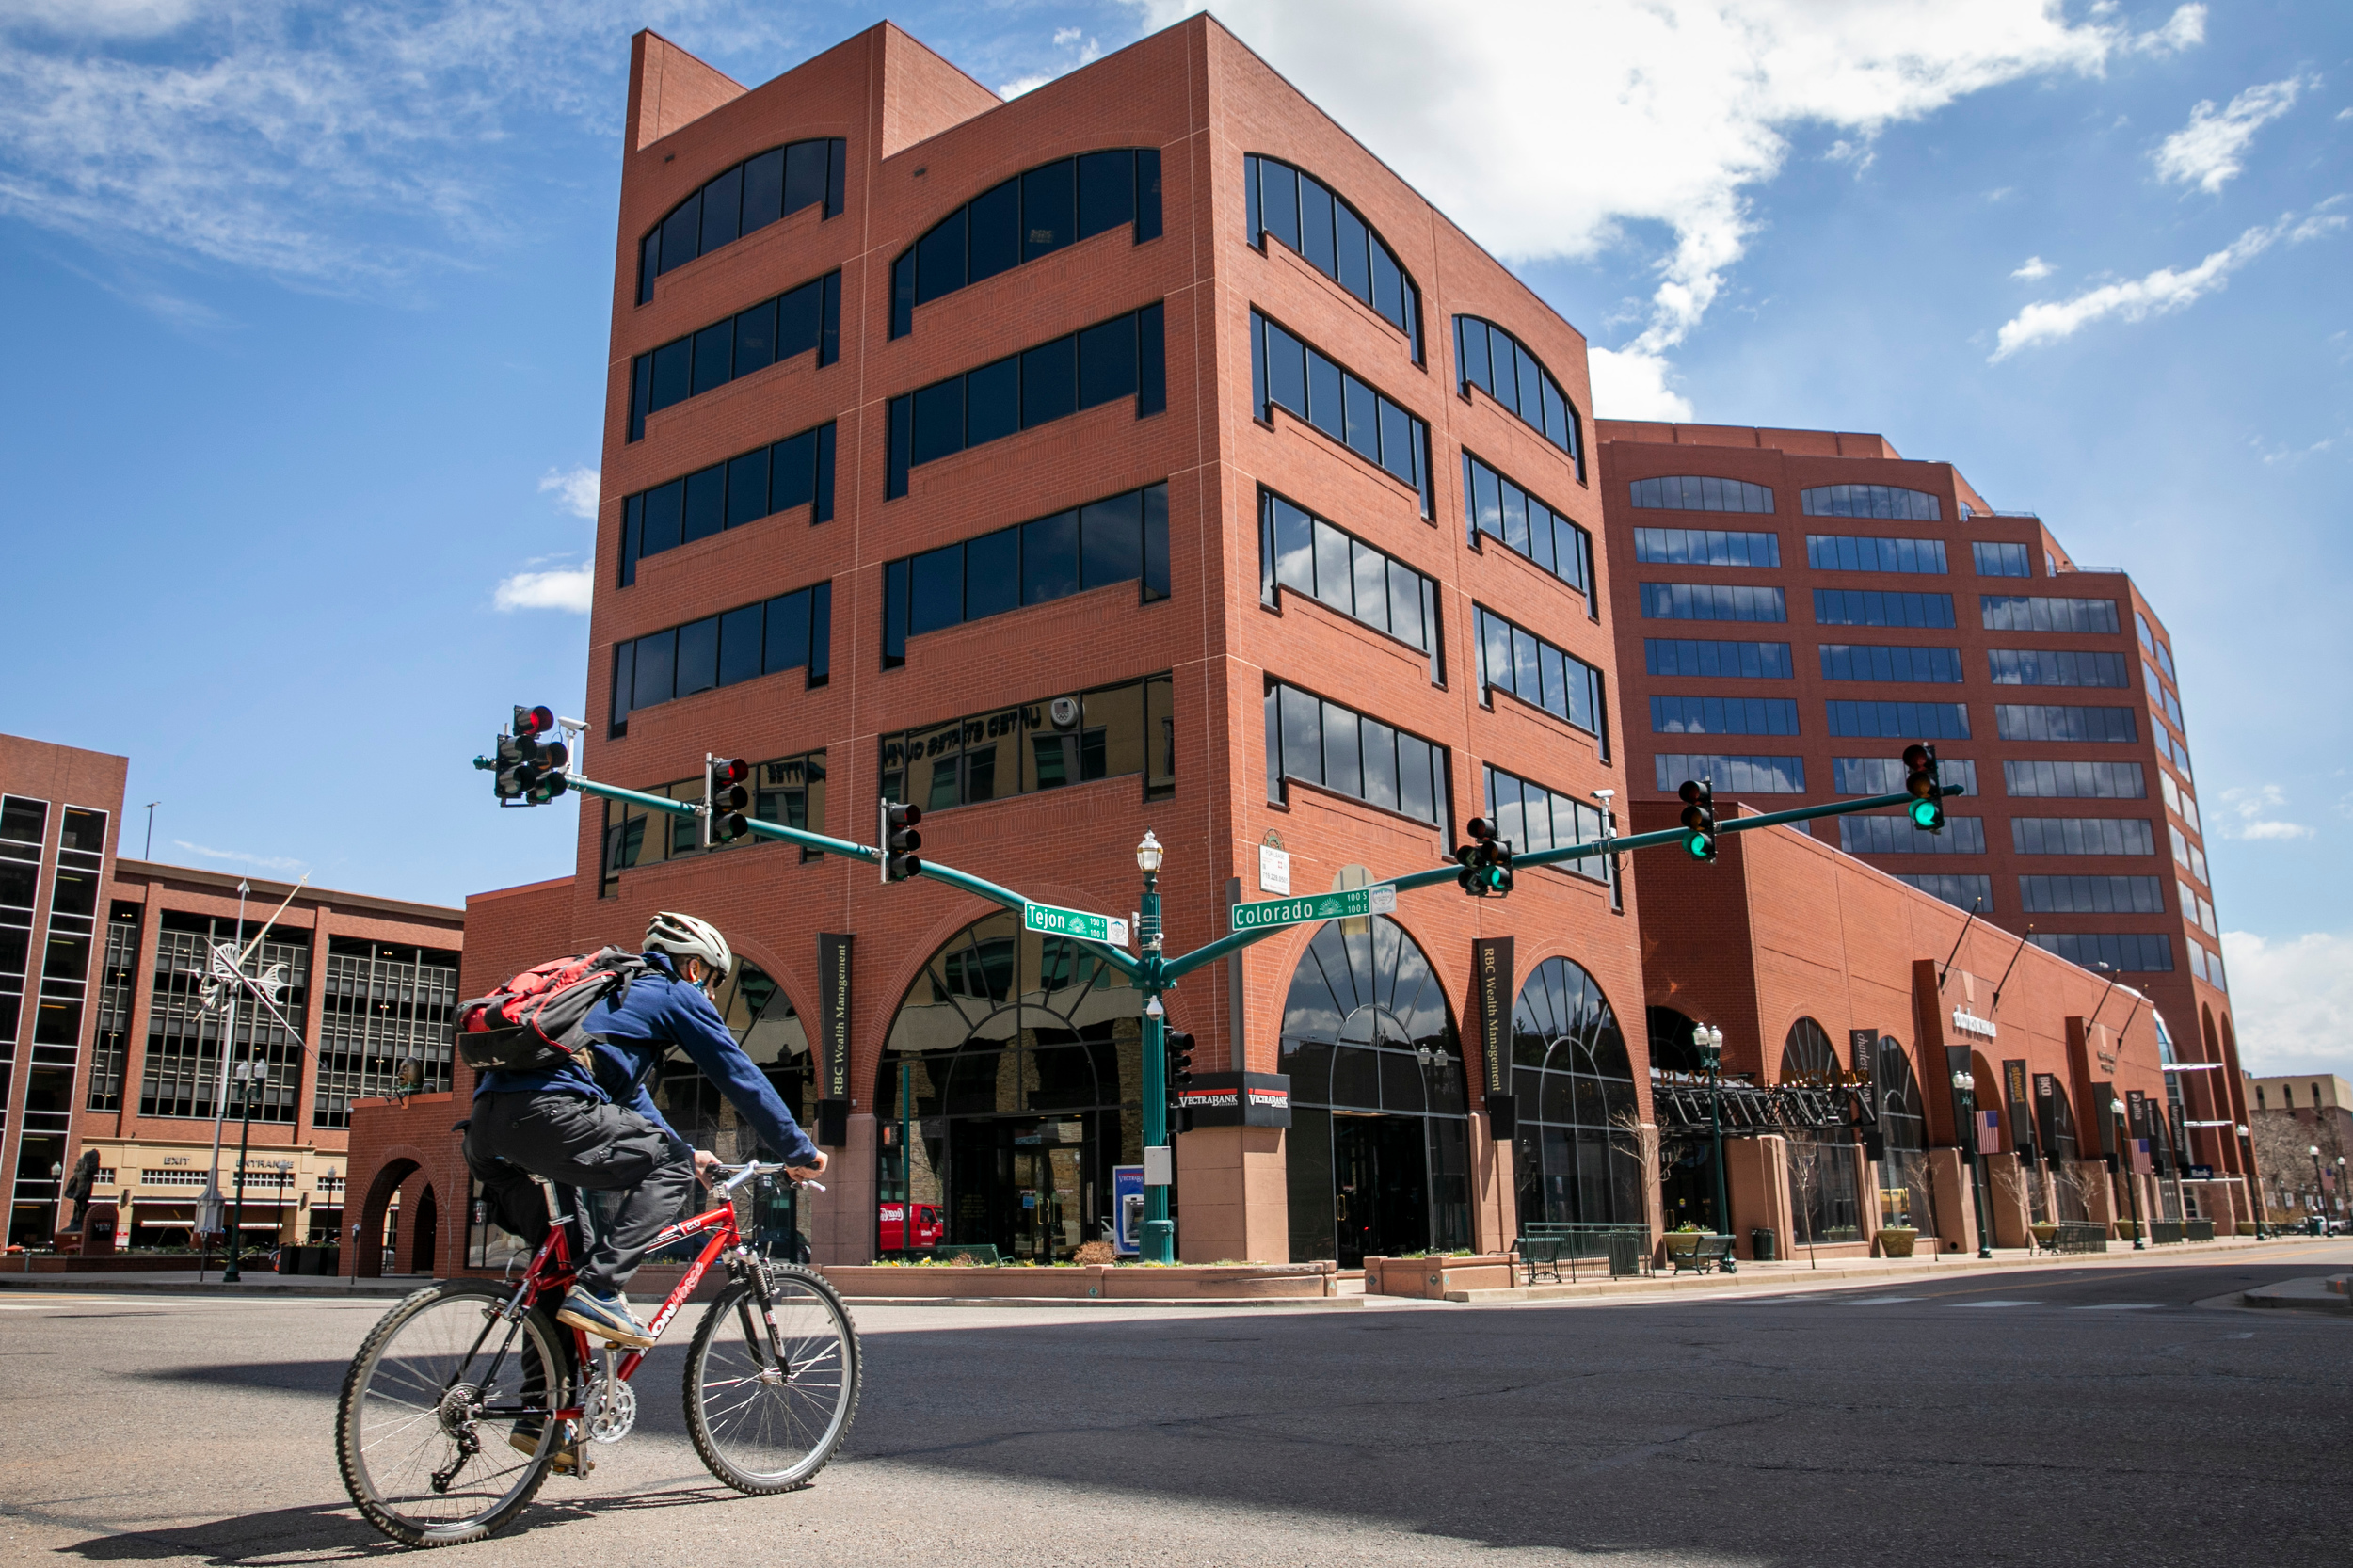 Small Businesses In Colorado Springs Think About Reopening After Coronavirus